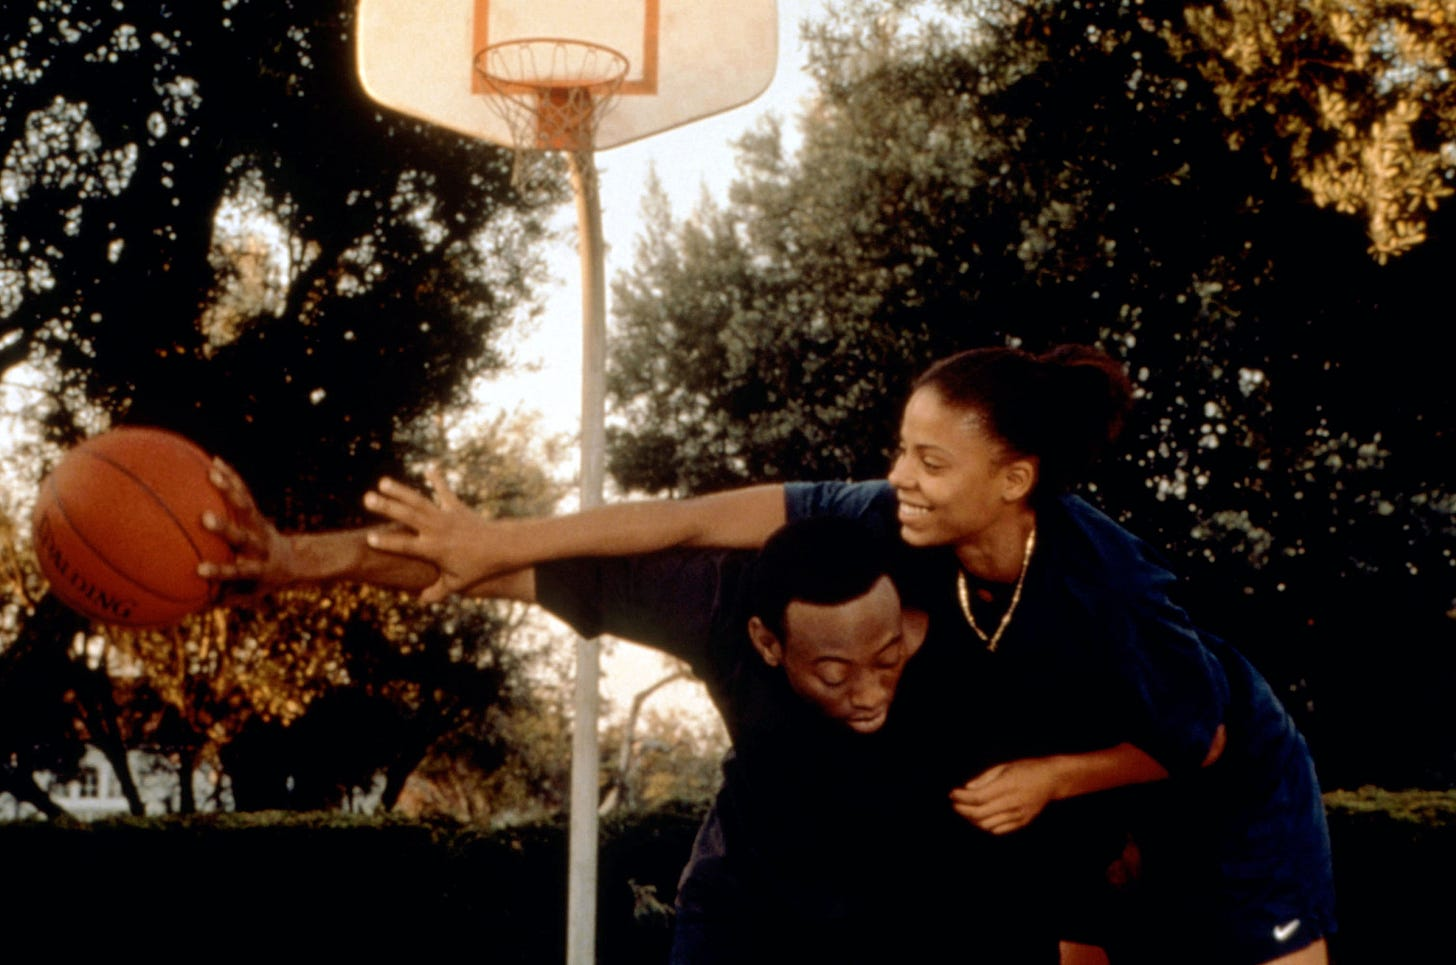 The two characters of love and basketball playing basketball. She is reaching over his back trying to grab the ball which he is holding at arm's length.